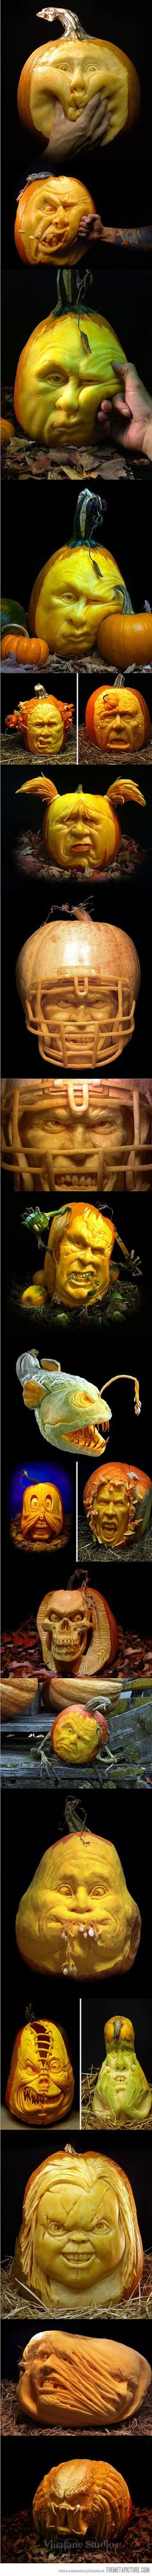 funny pumpkin art faces heads on imgfave